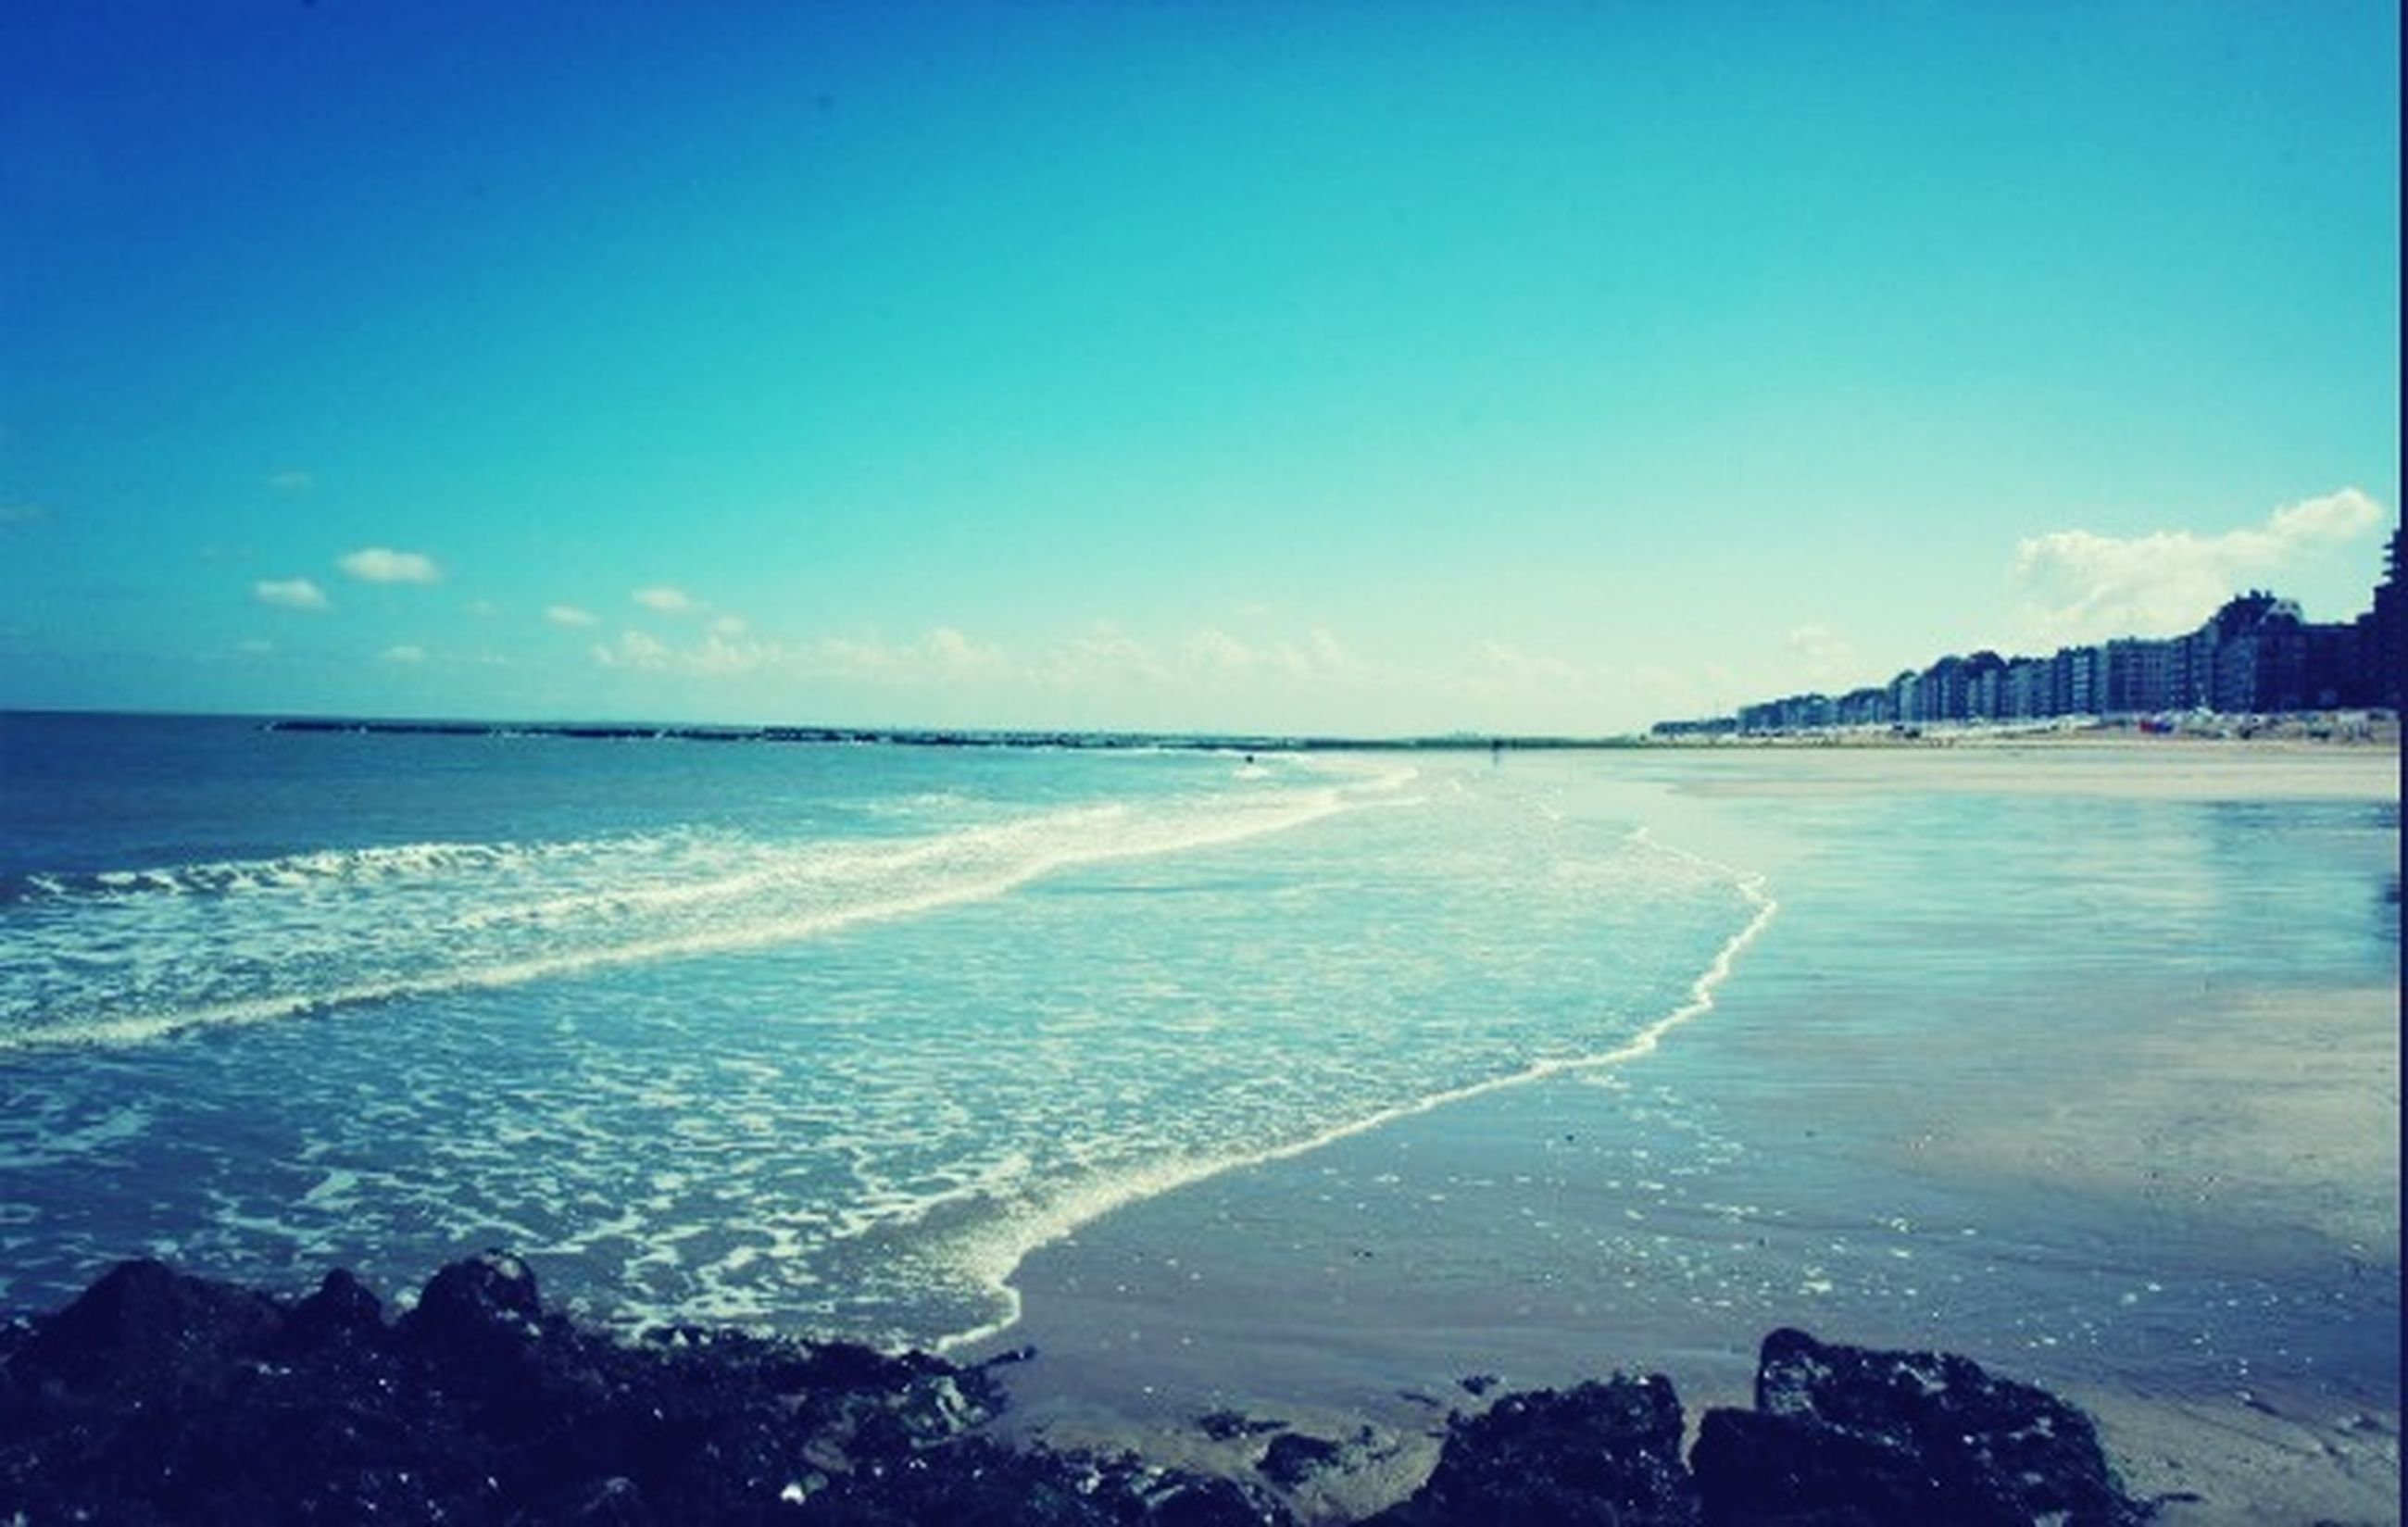 sea, water, horizon over water, scenics, blue, tranquil scene, beauty in nature, tranquility, nature, copy space, sky, clear sky, coastline, beach, idyllic, shore, seascape, outdoors, day, high angle view